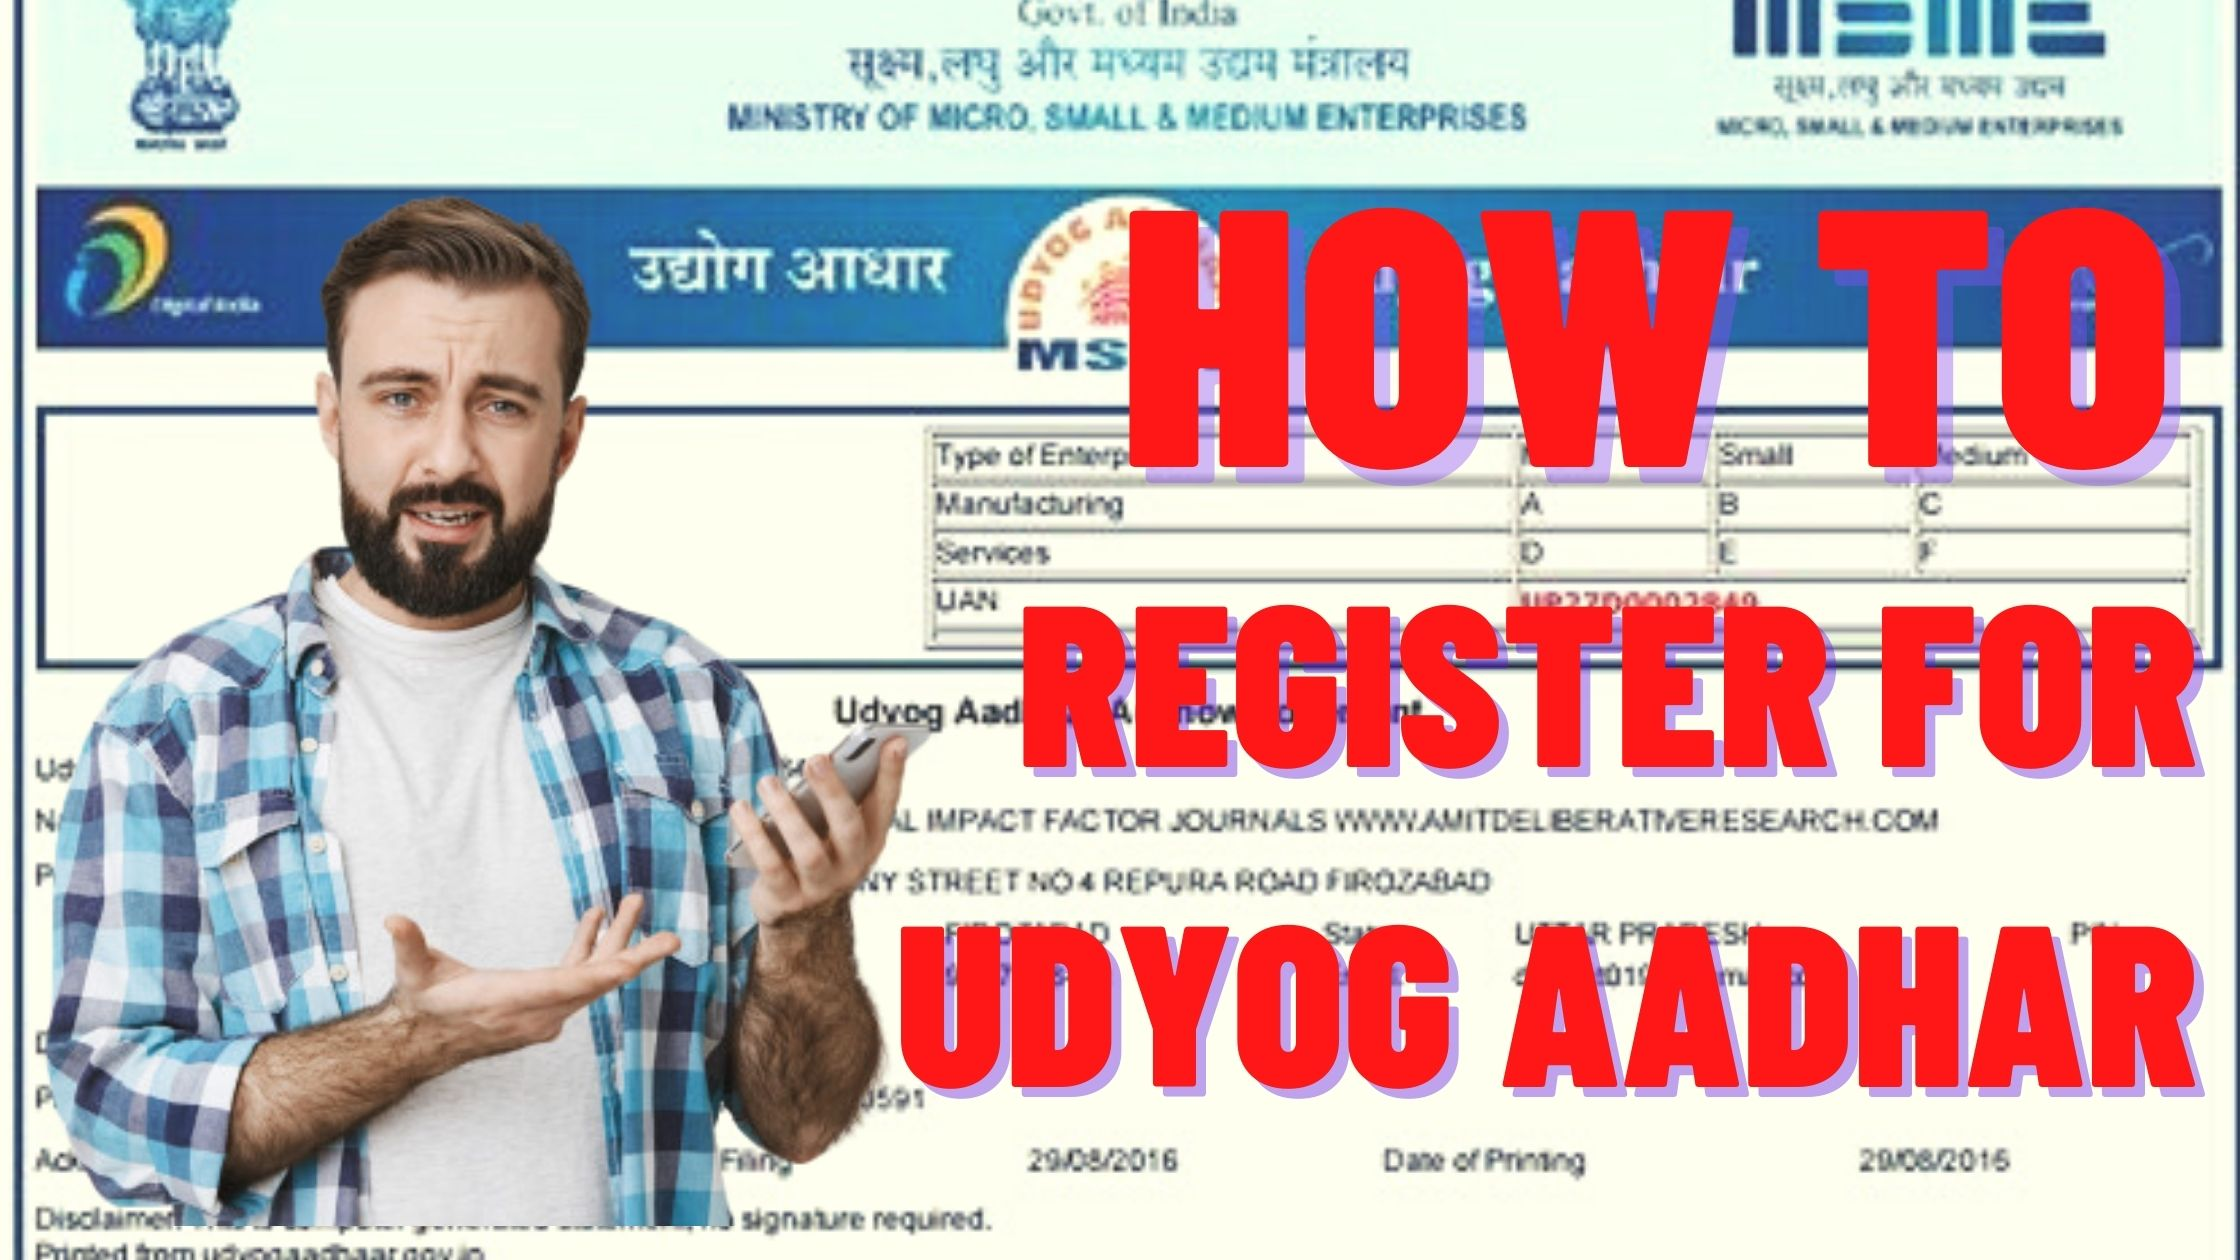 How to Register for Udyog Aadhar